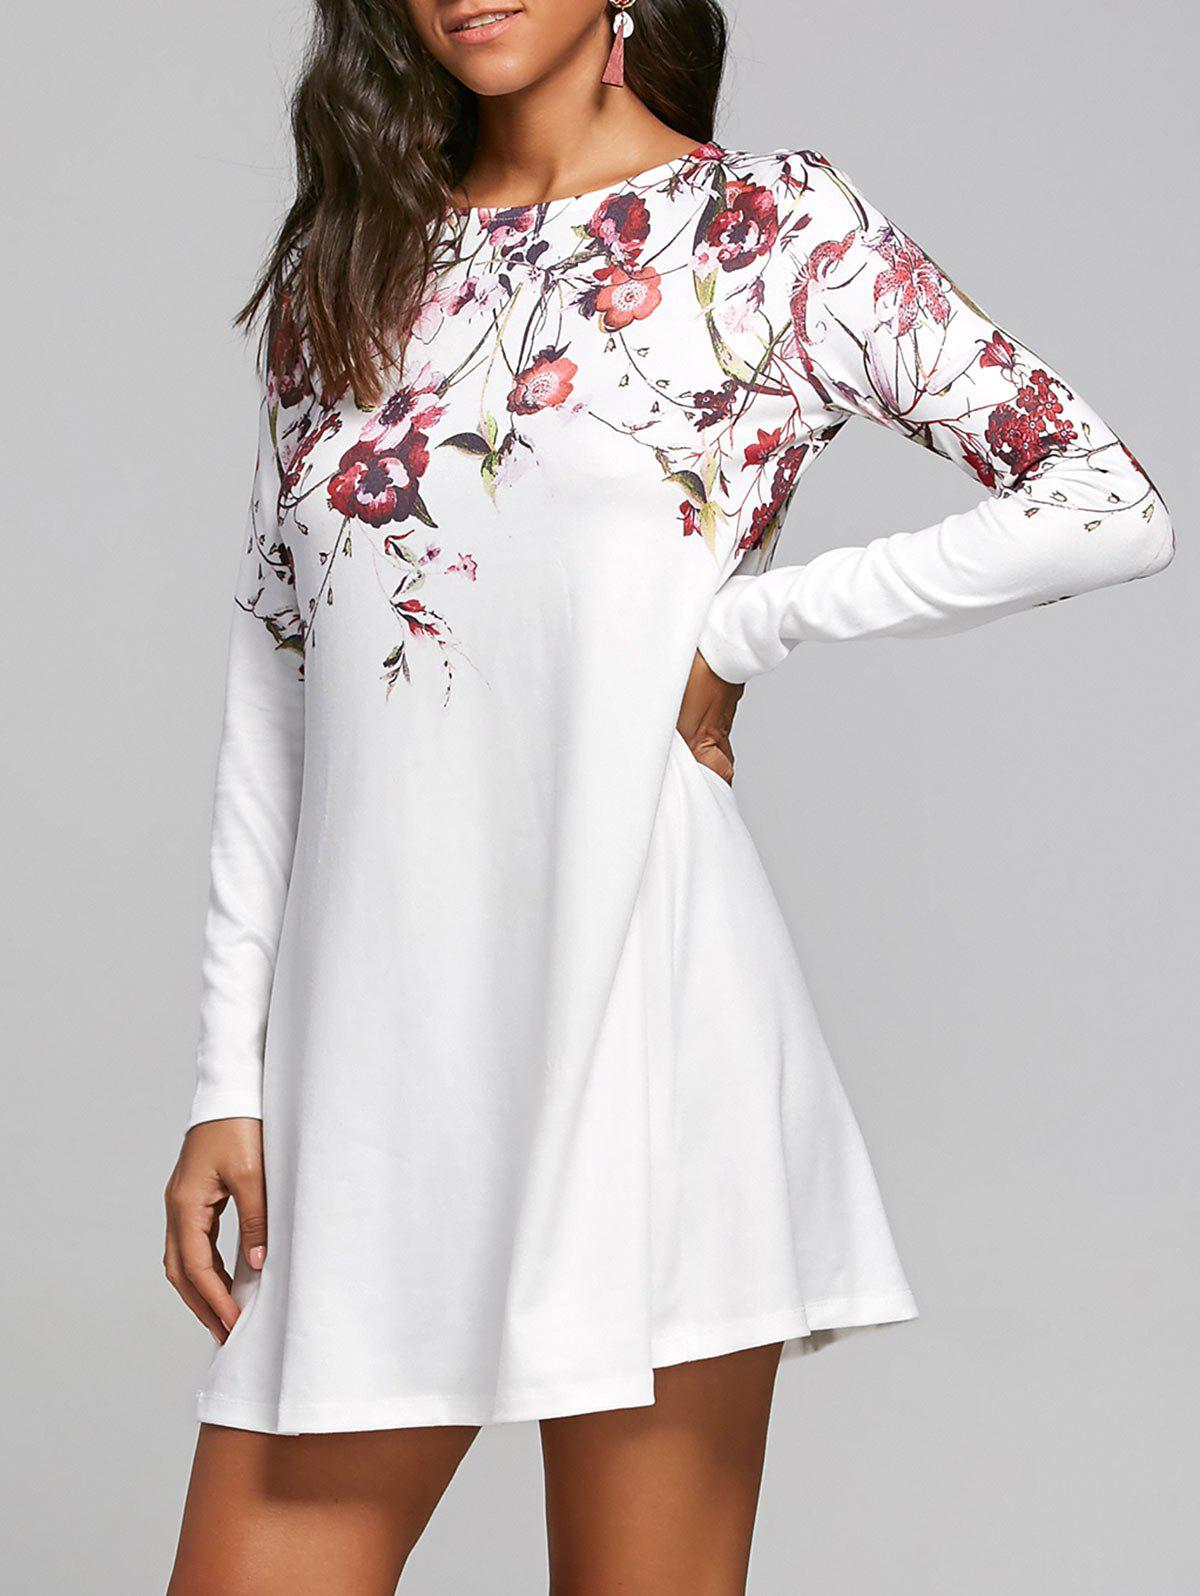 Long Sleeve Flower Print T-shirt Shift Dress - WHITE L